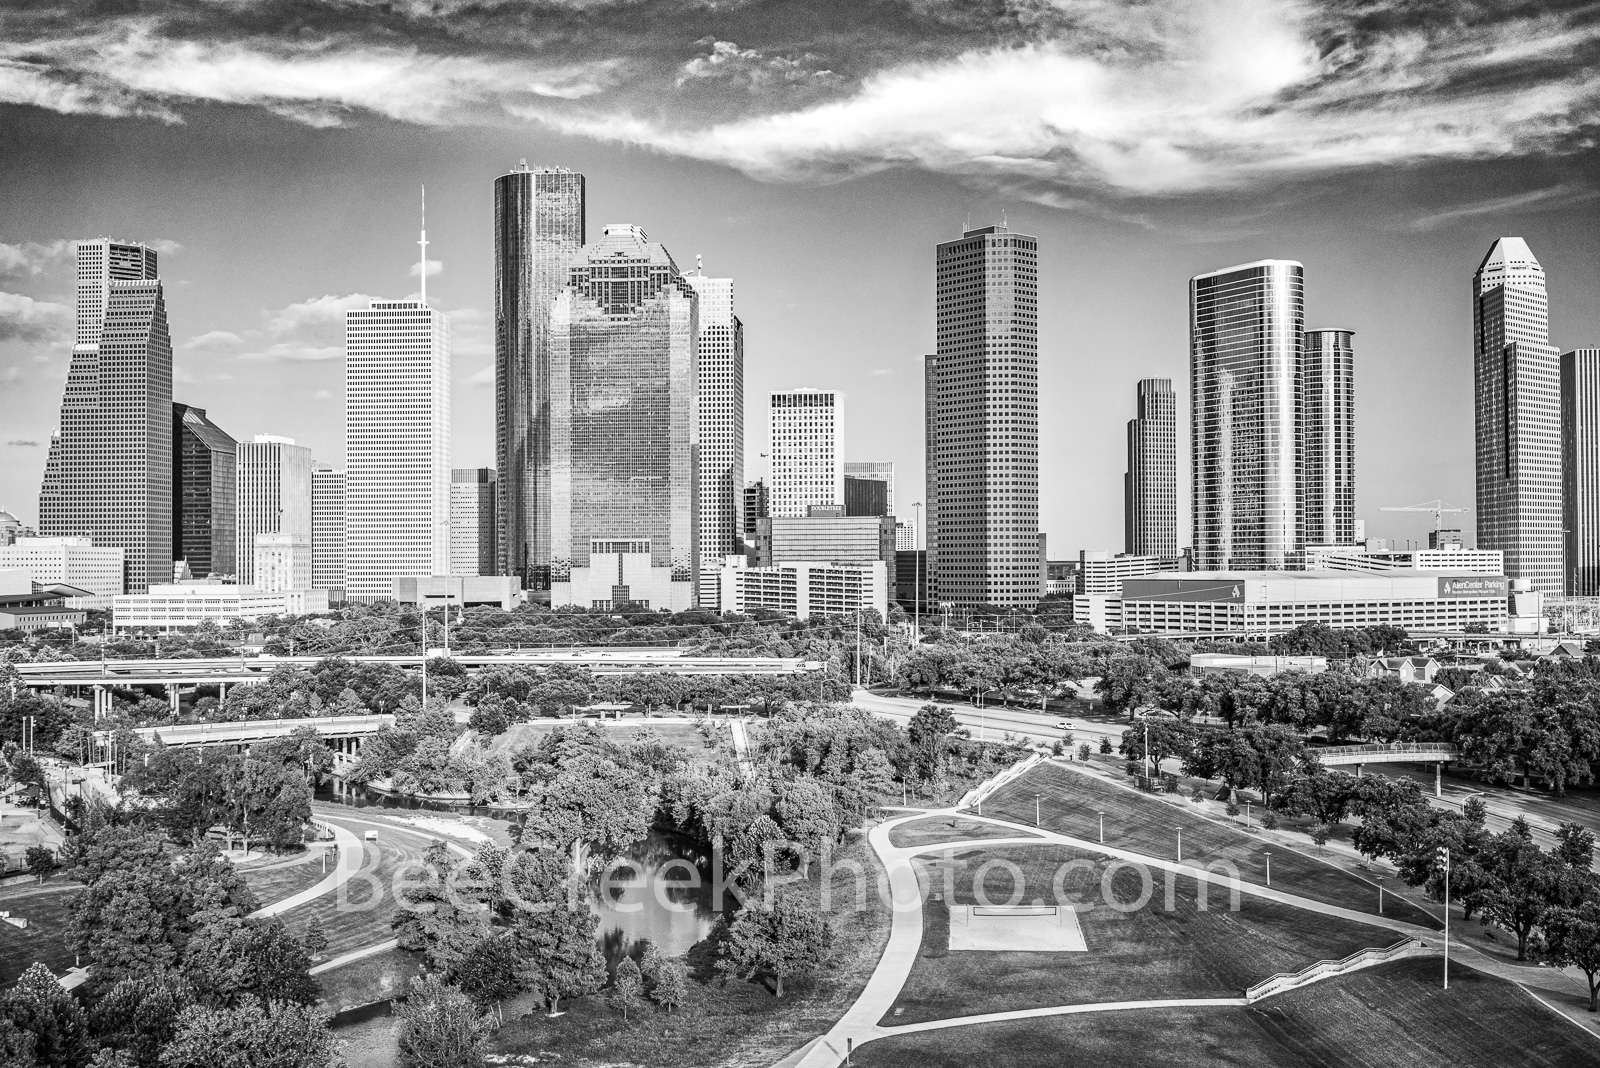 Houston Skyline Aerial View BW  - This is another aerial view of a urban landscape of downtown Houston skyline from a city park...